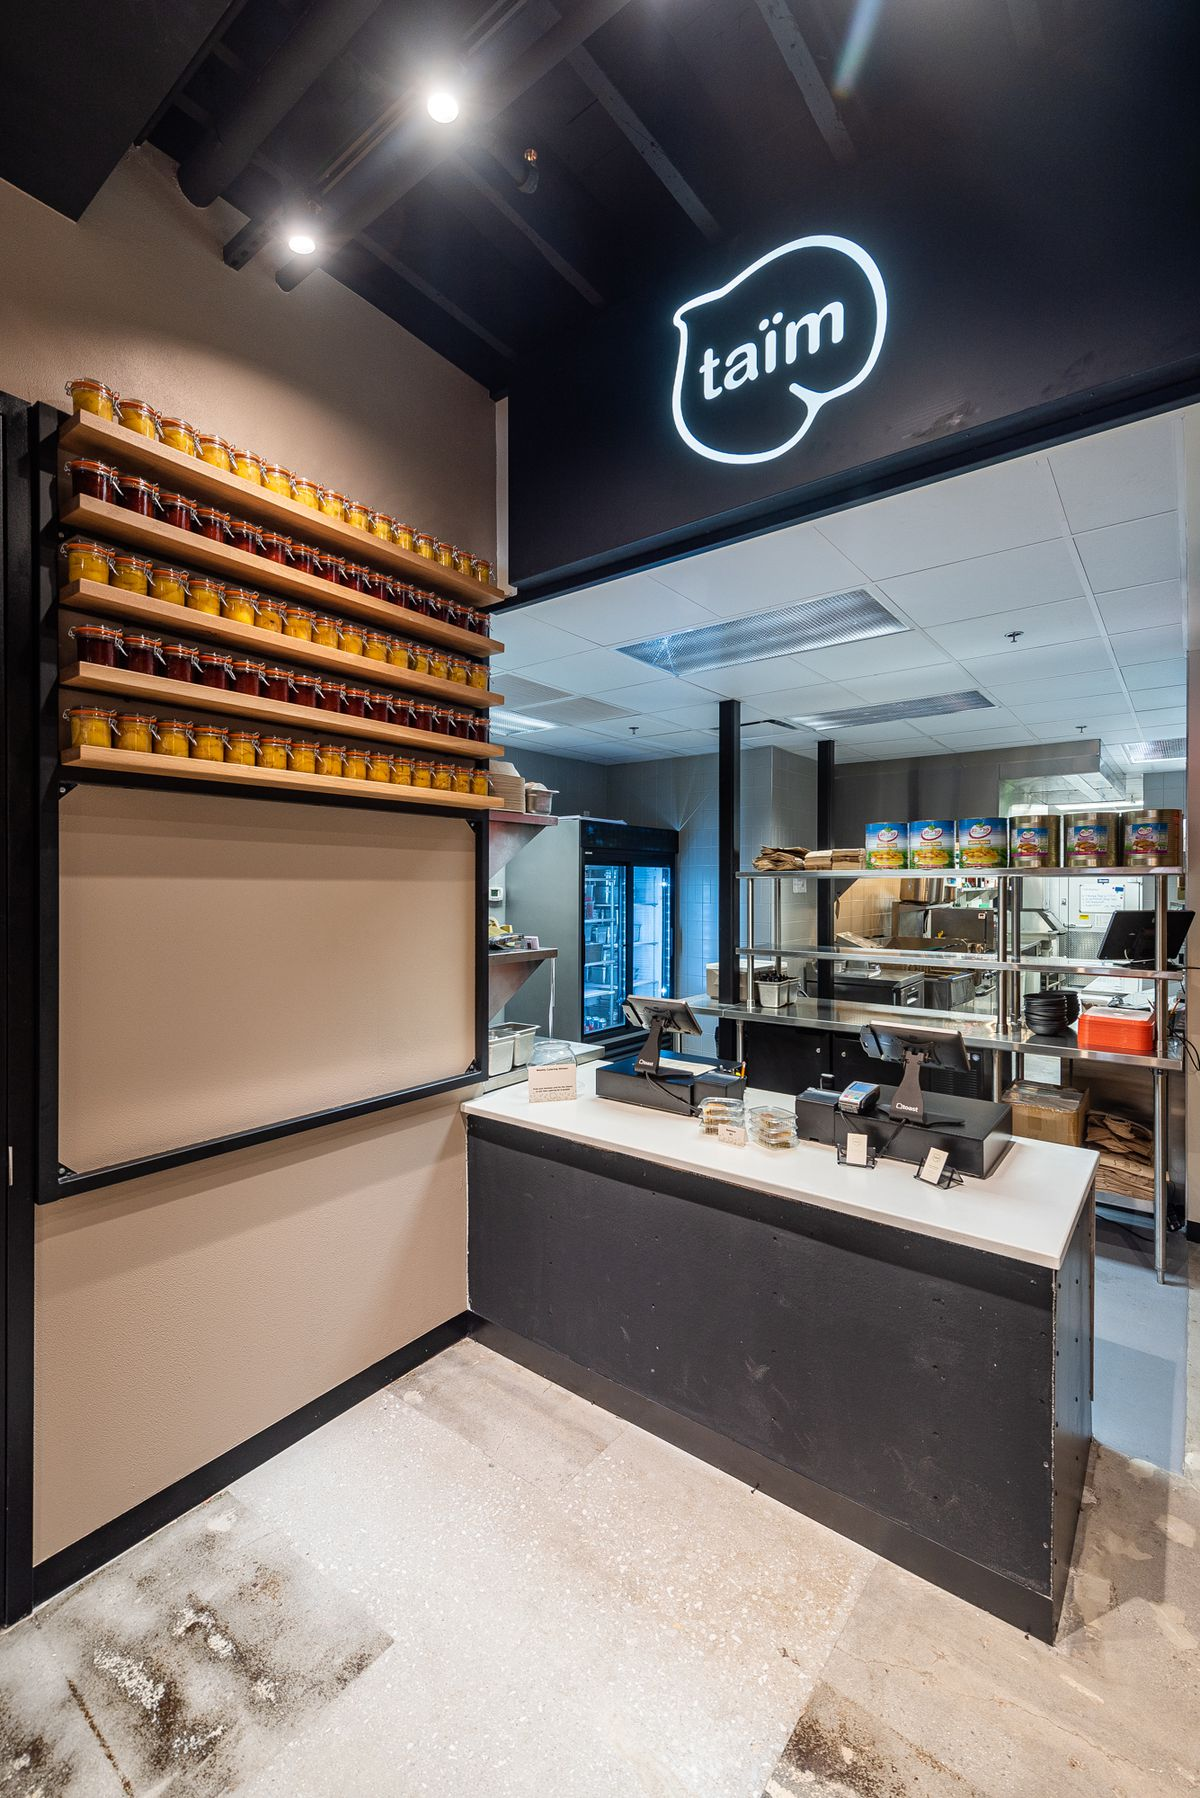 The ordering station at Taïm